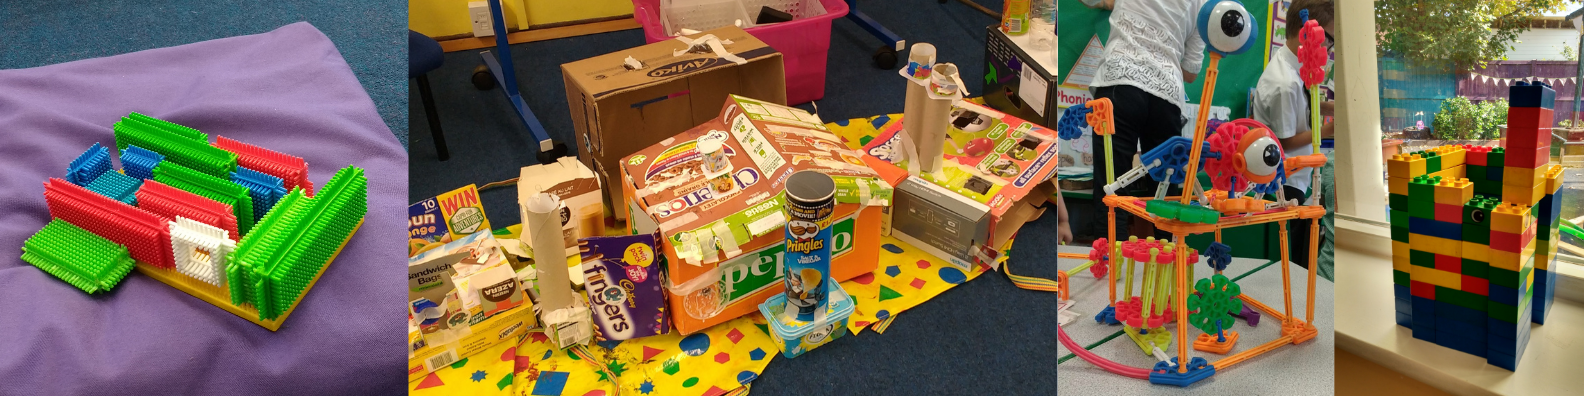 Lum's Houses created by children on school author visits